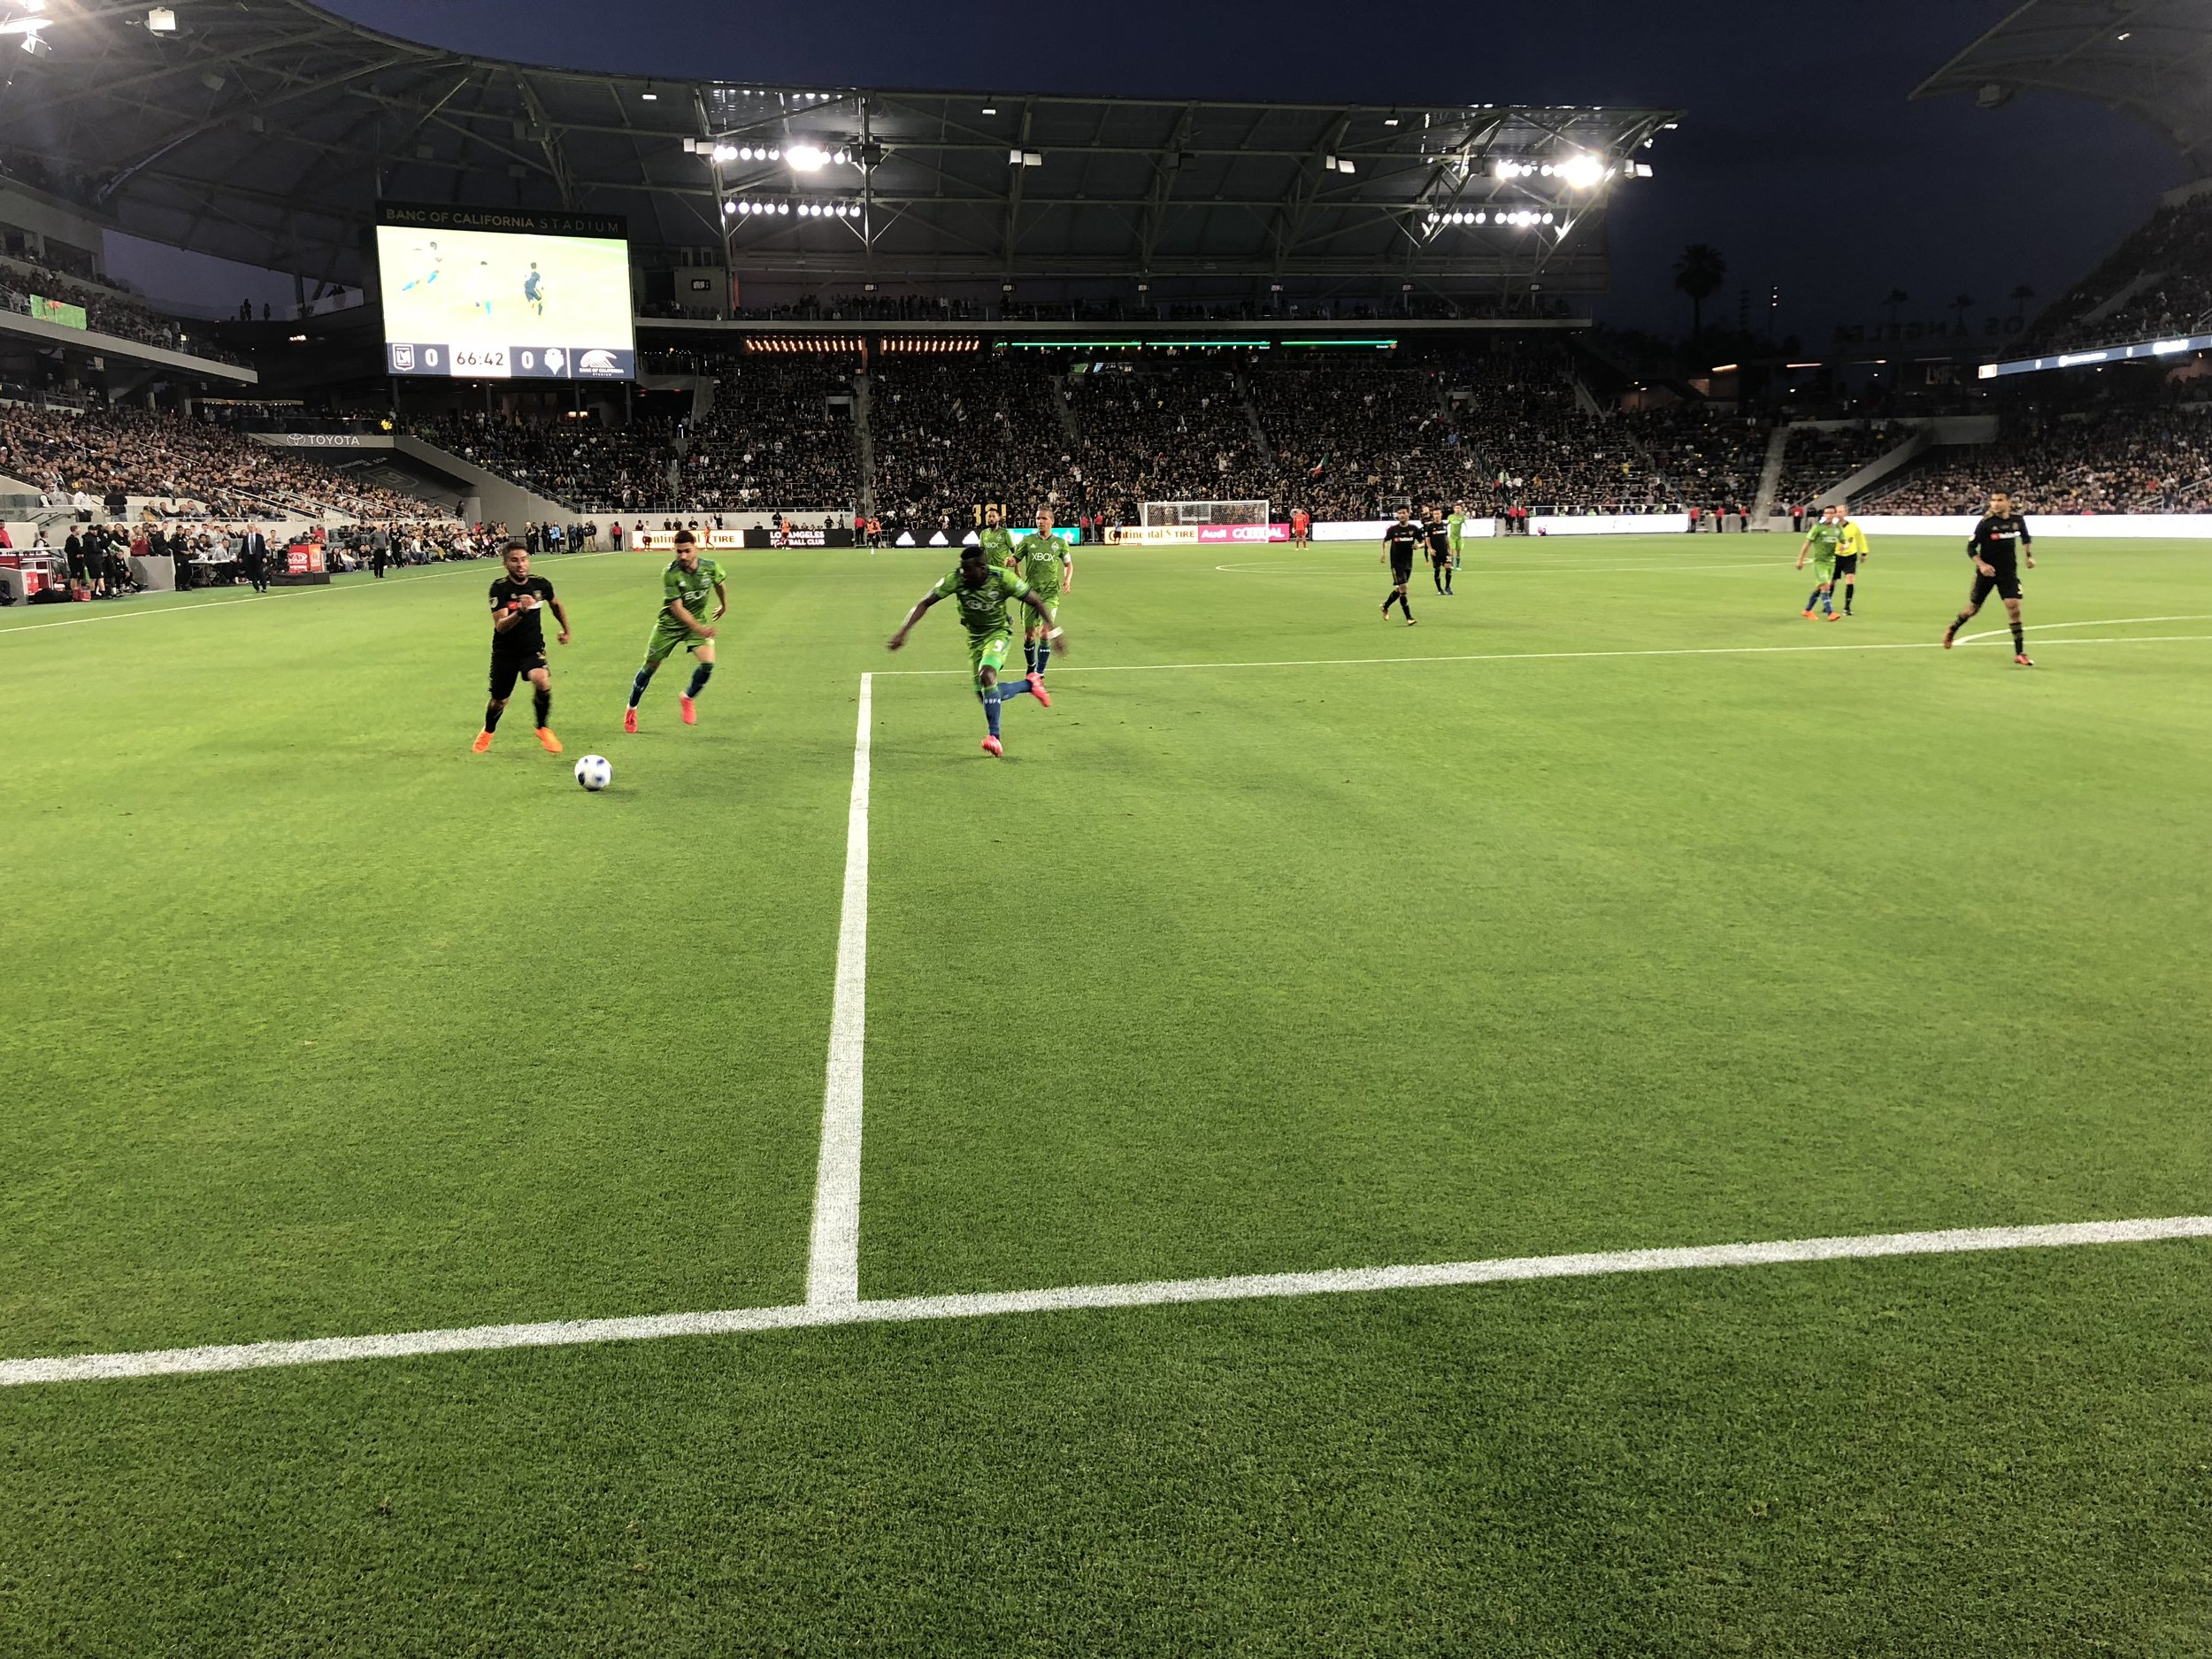 LAFC's home opener vs Seattle Sounders